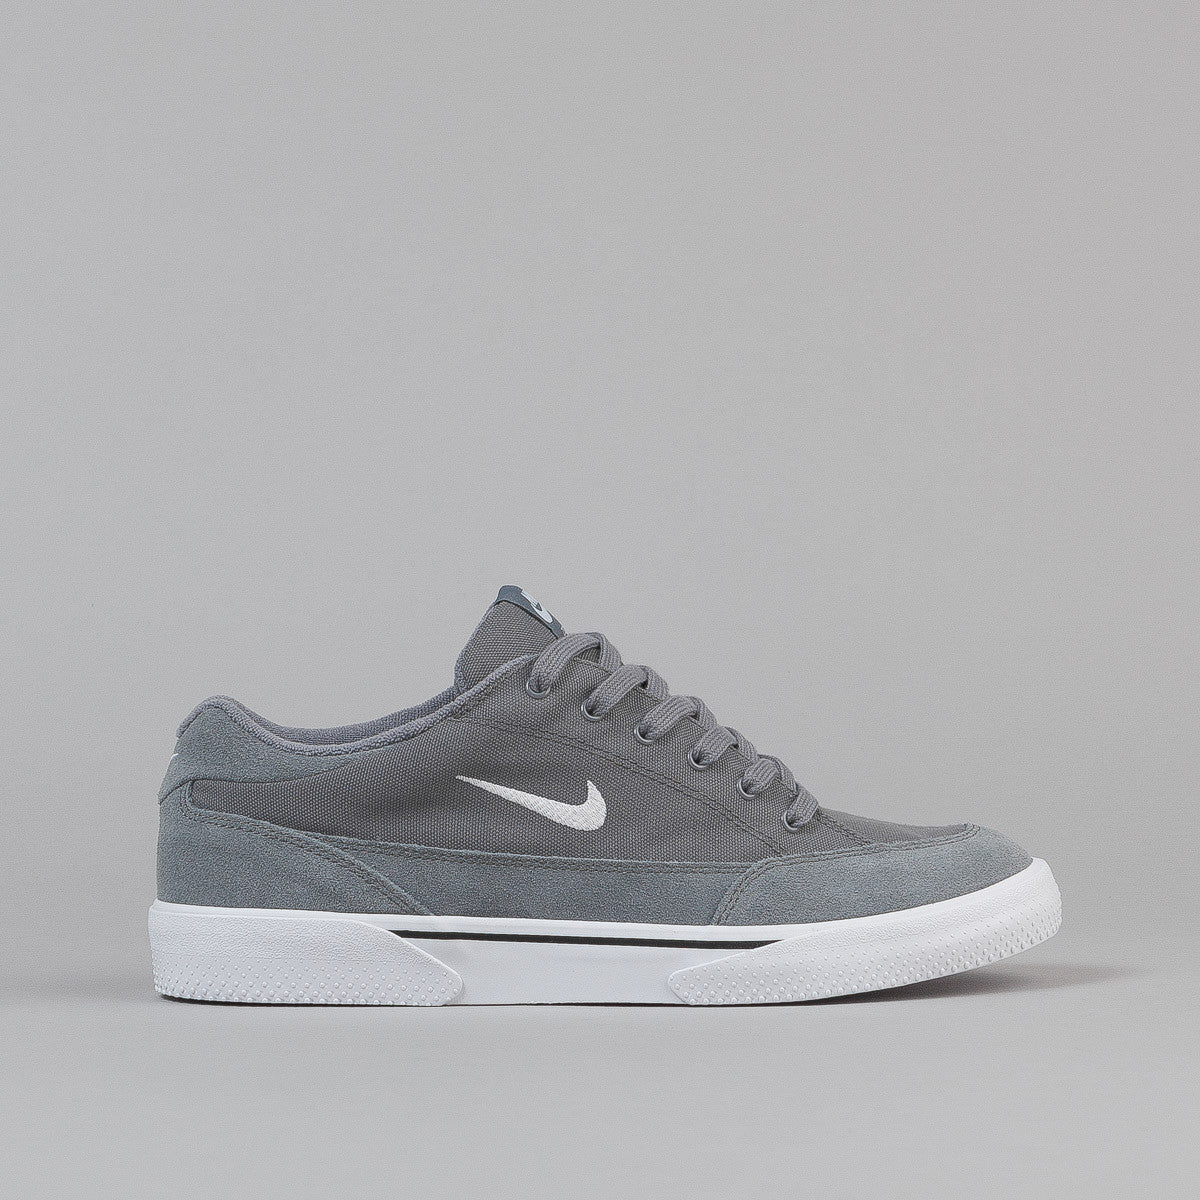 Nike SB Zoom GTS Shoes